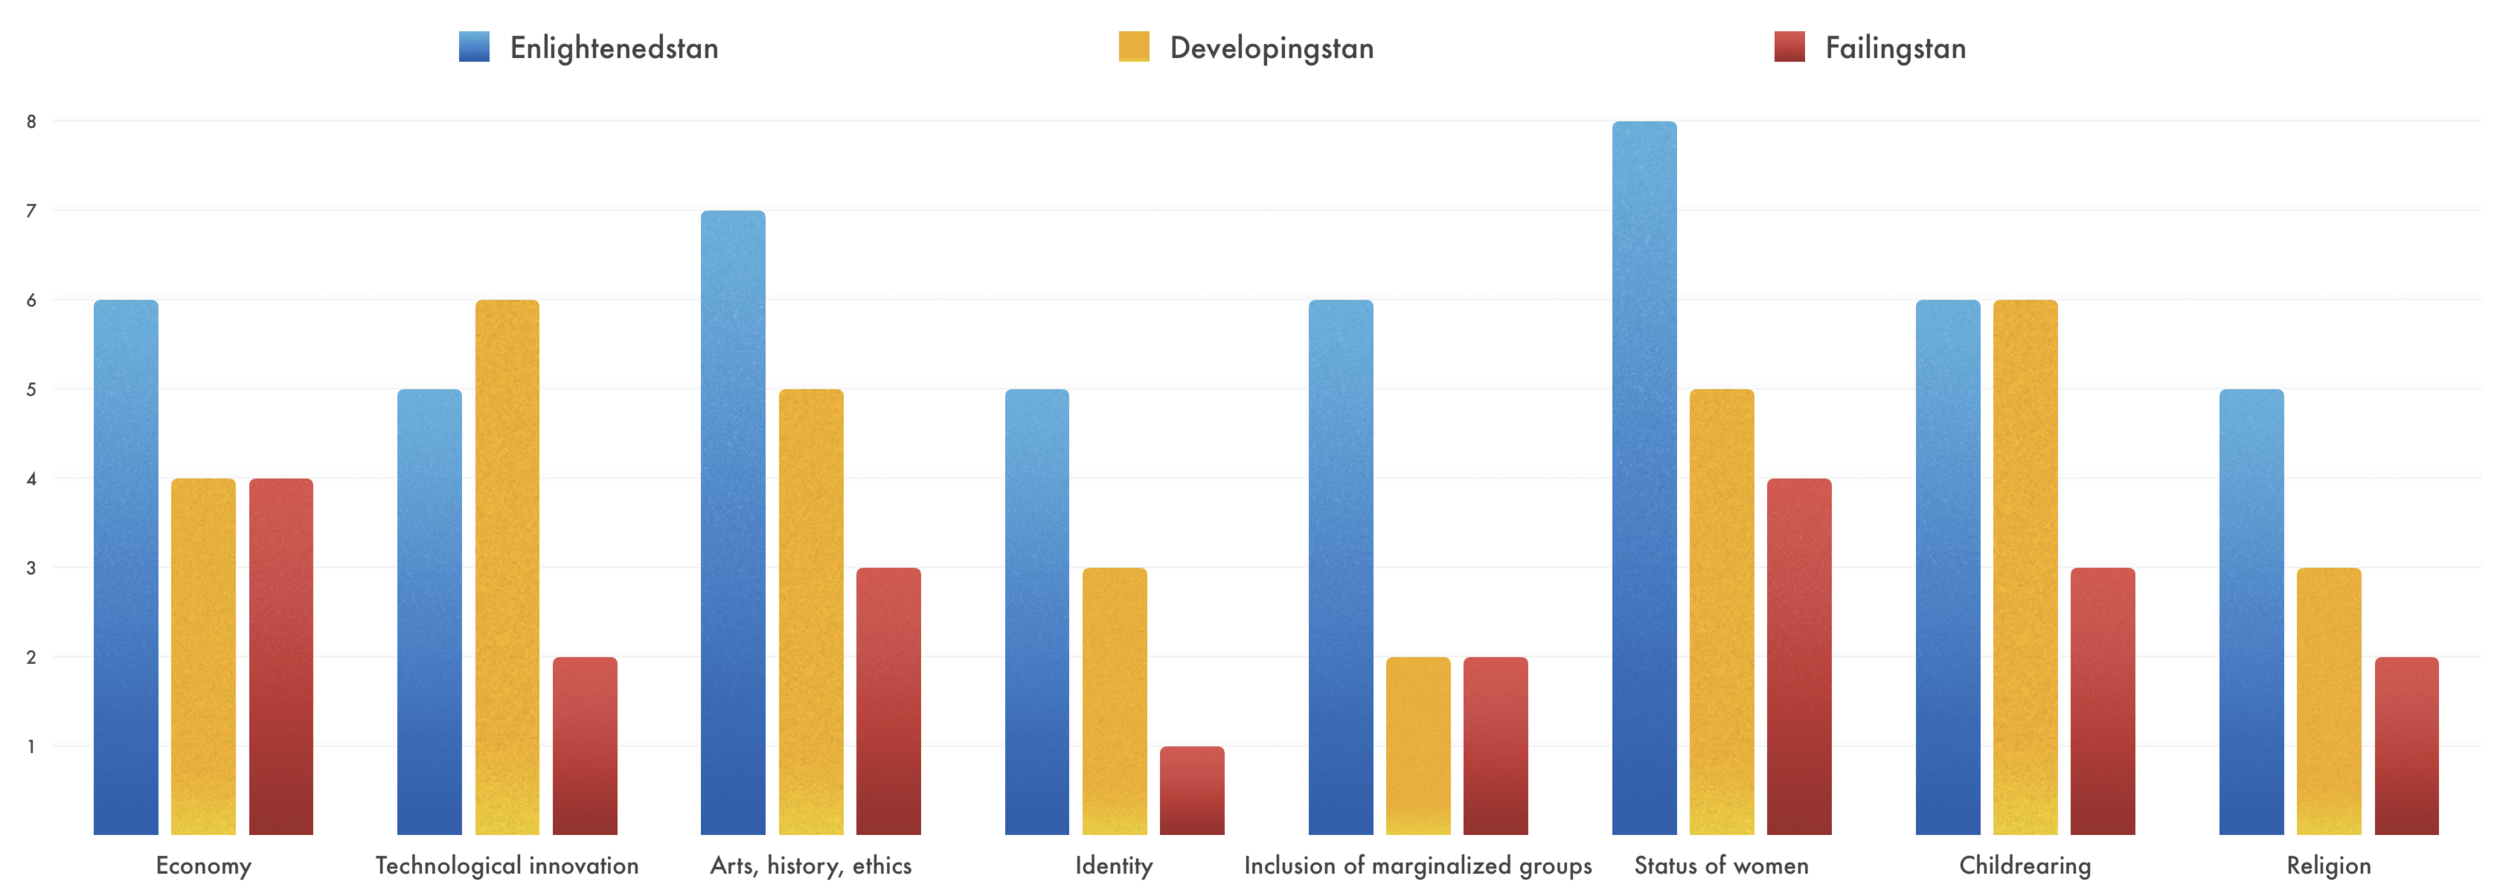 In general, more developed countries rank higher in the eight dimensions of resilience, but not always. For example,  Developingstan  ranks higher on technological innovation than  Enlightenedstan.